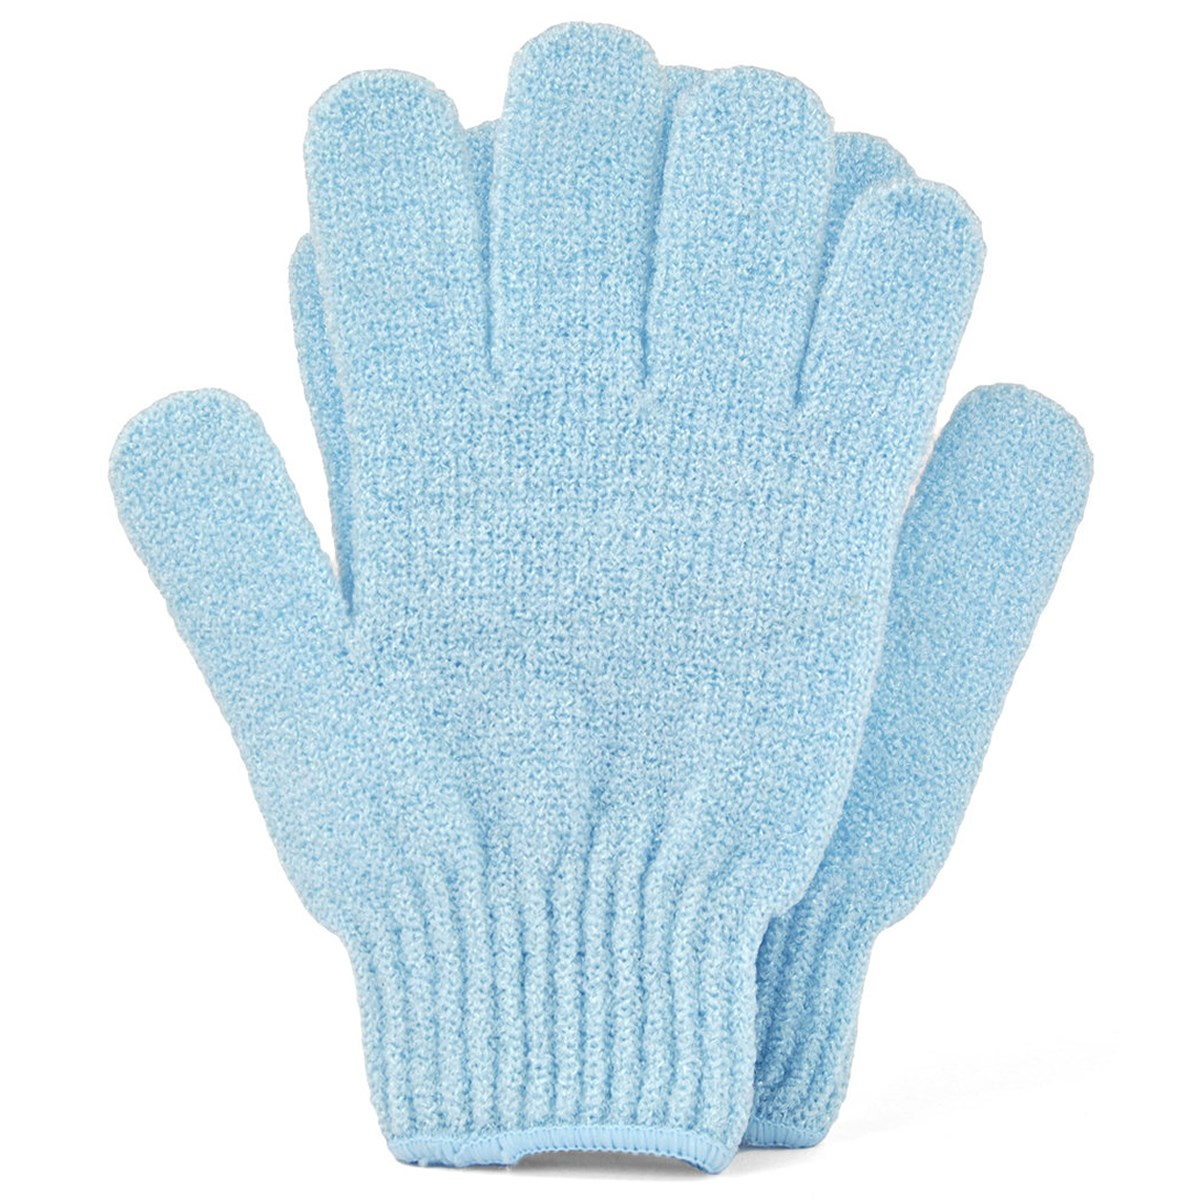 Opal London Exfoliating Gloves